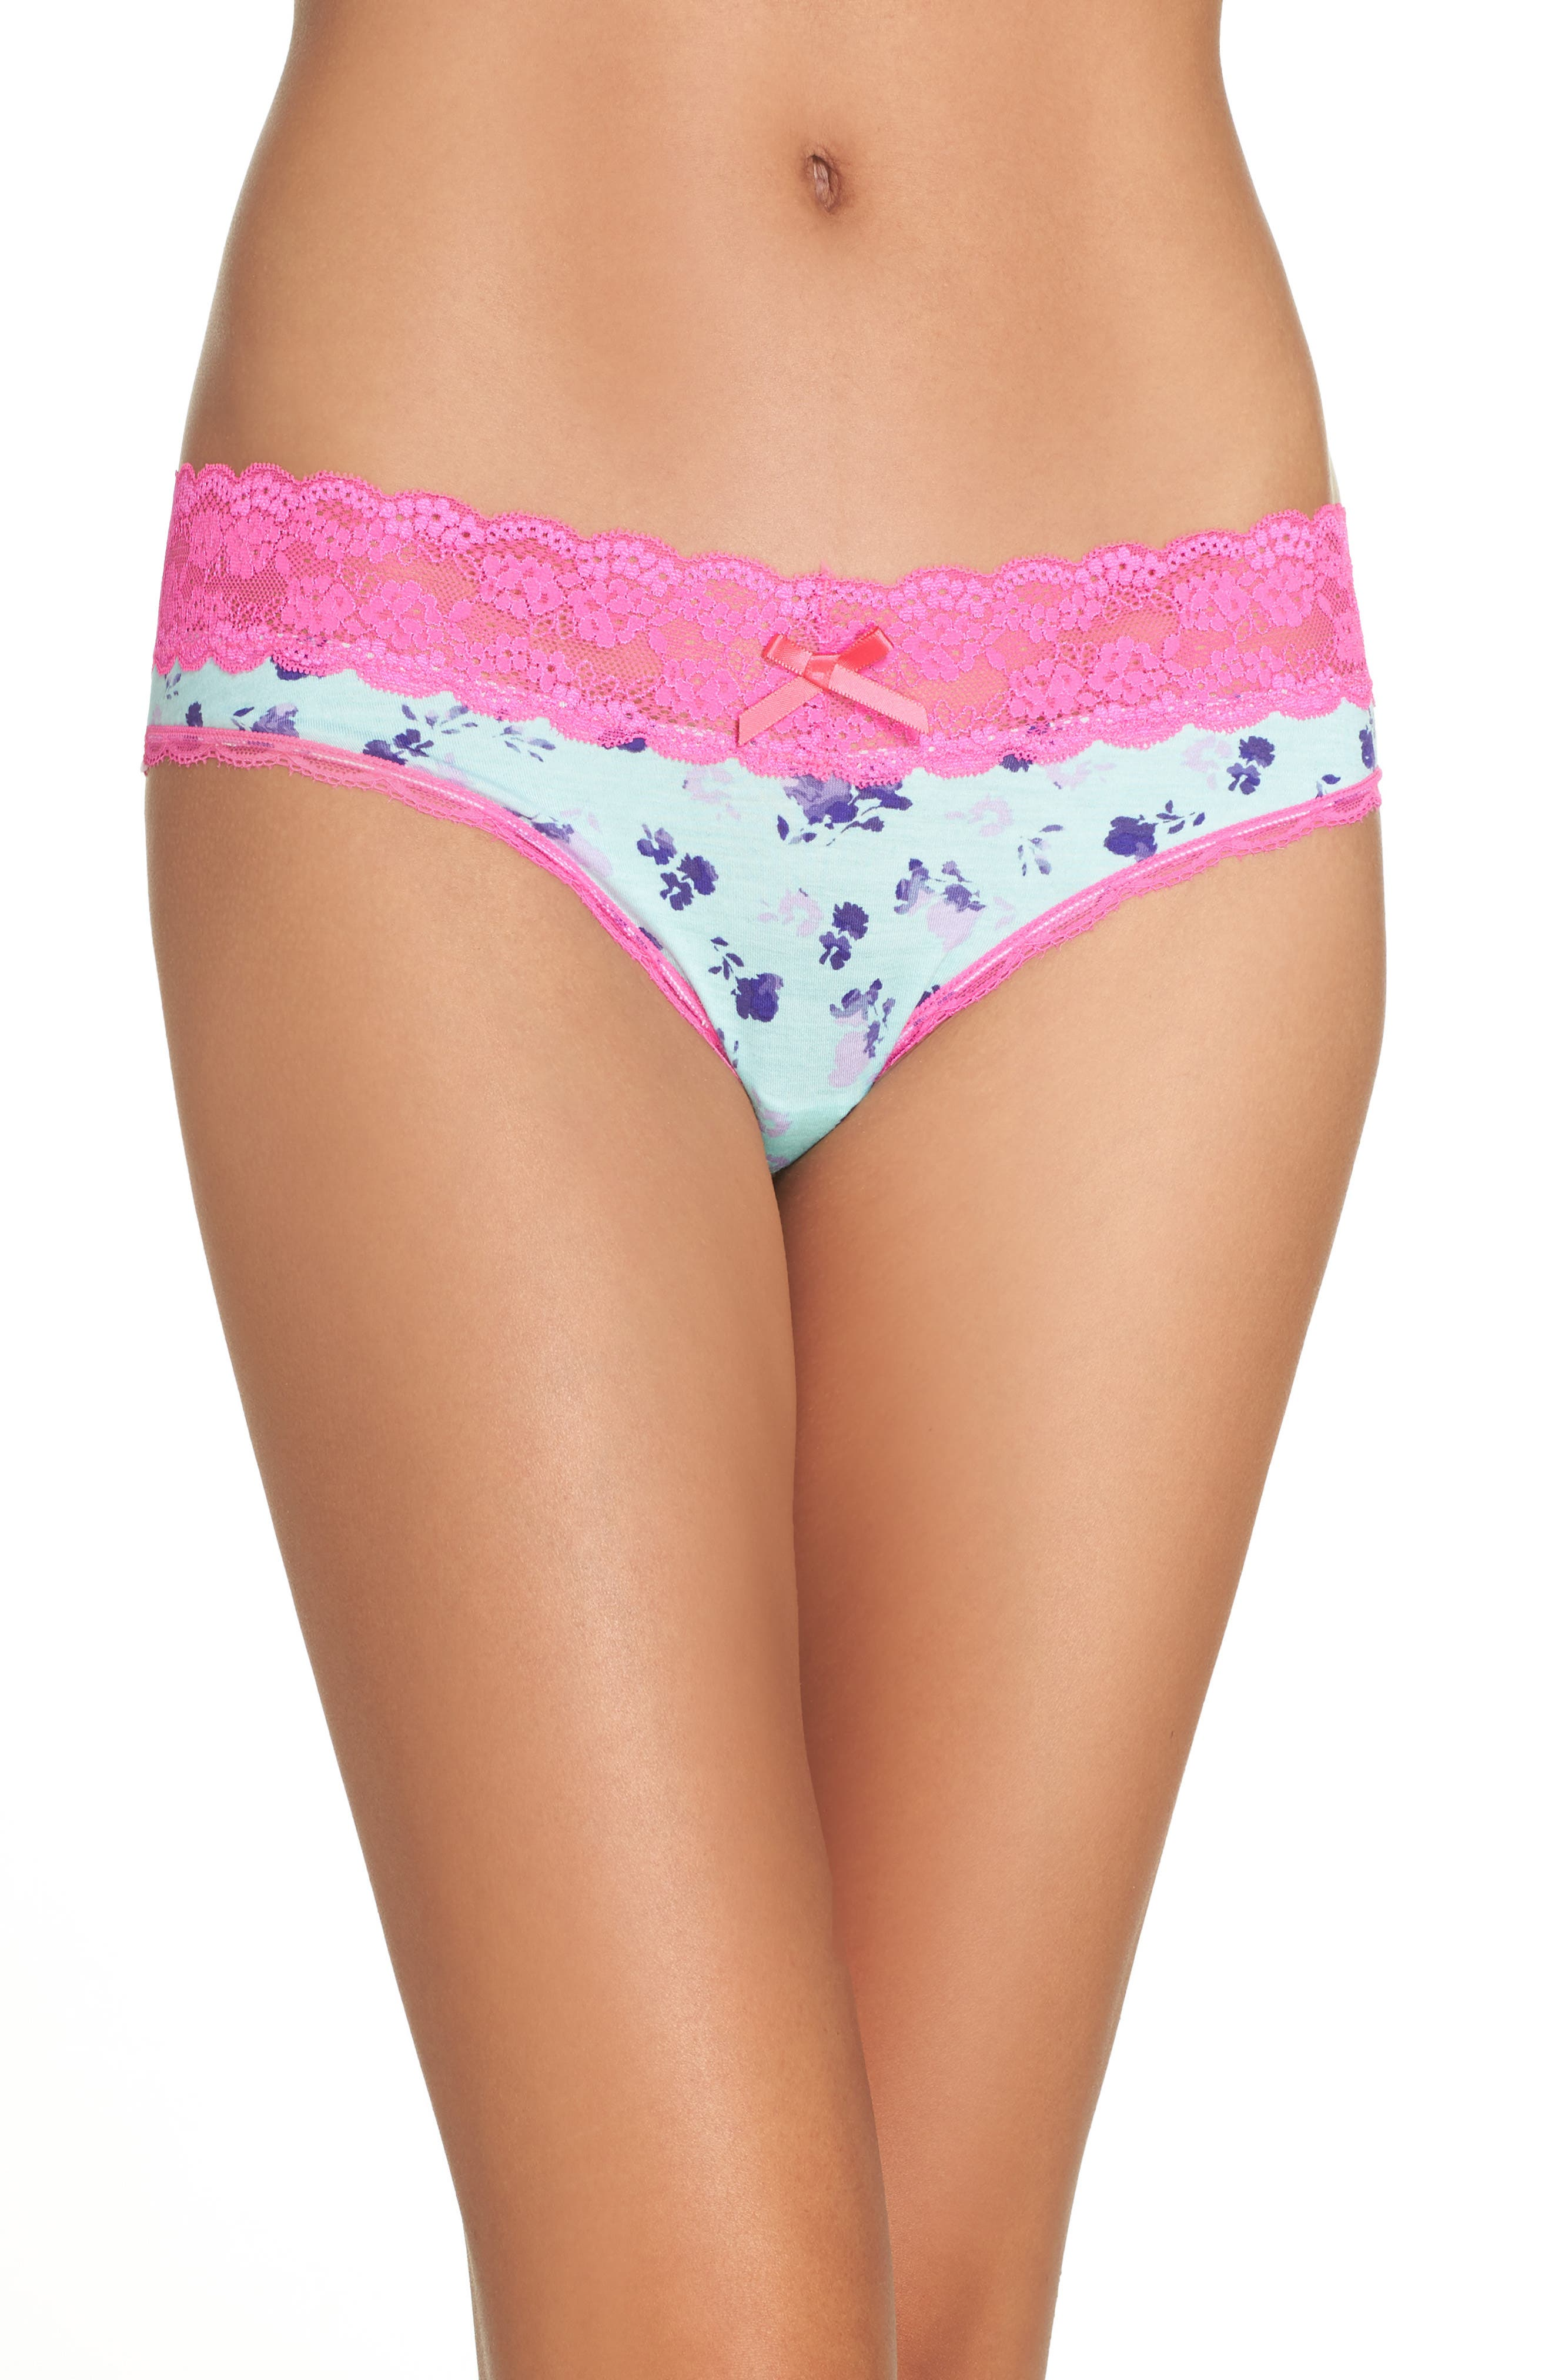 Main Image - Honeydew Intimates Lace Trim Low Rise Thong (4 for $30)